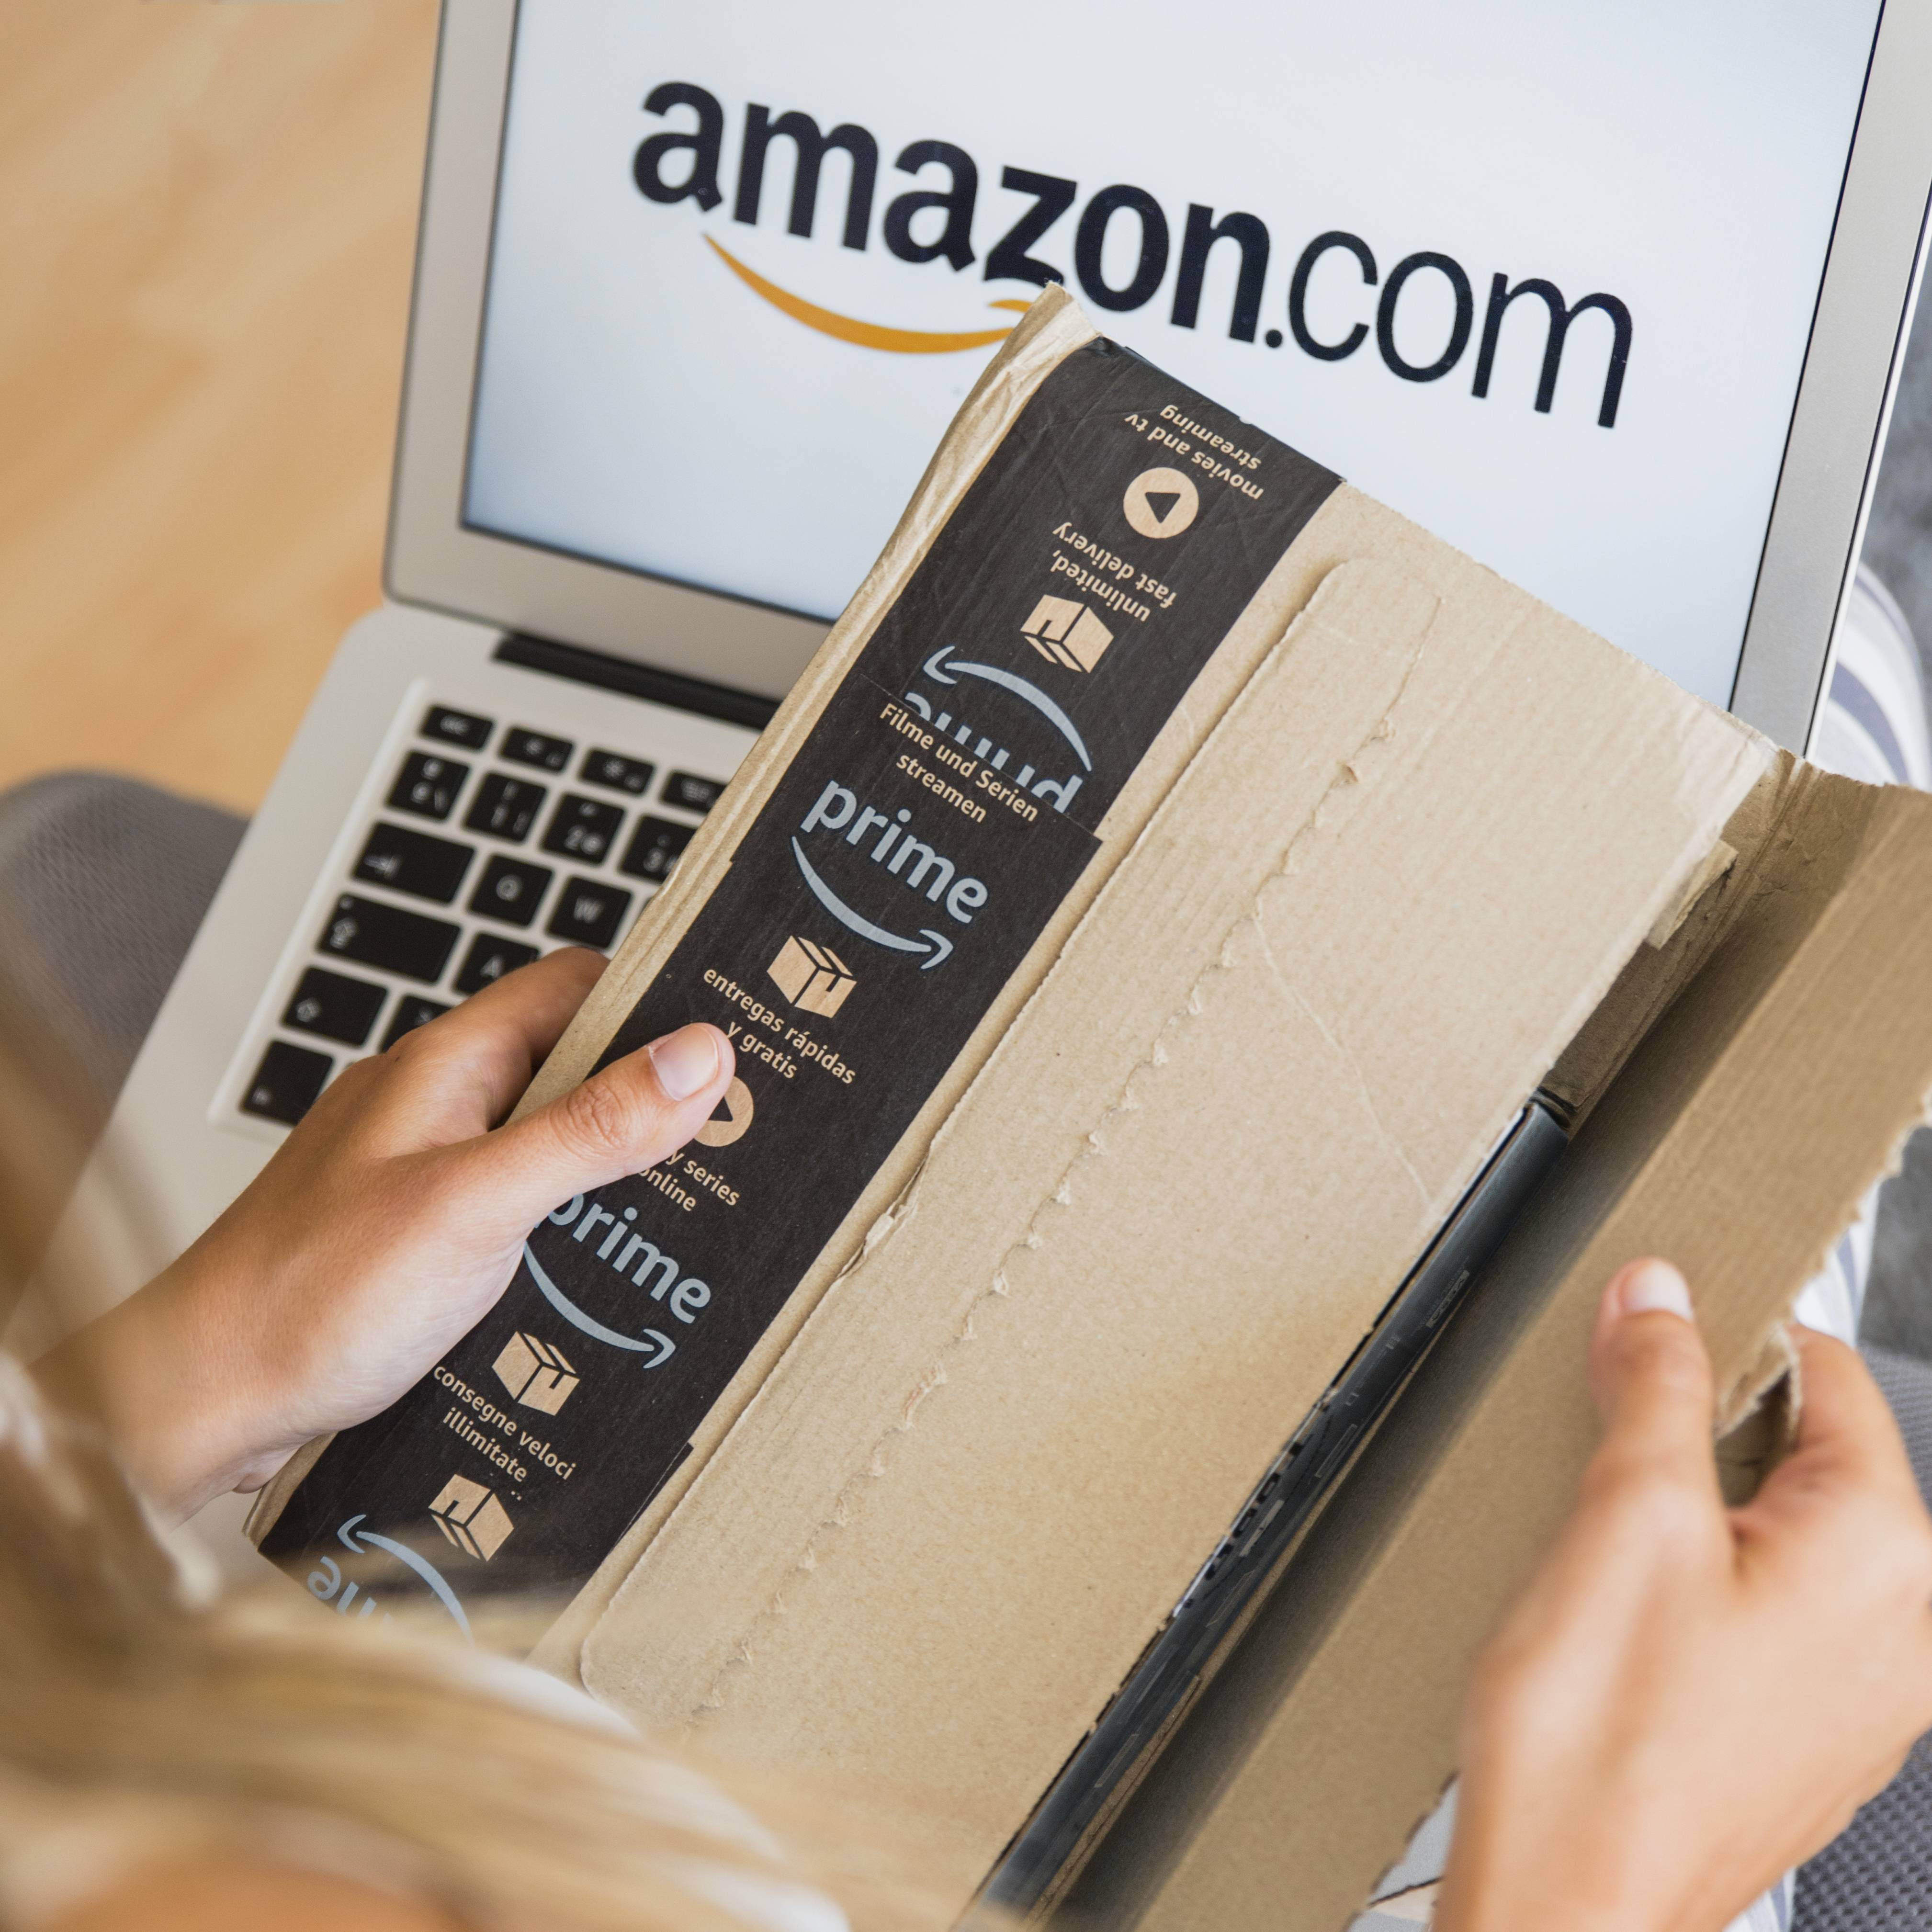 Amazon free shipping offer